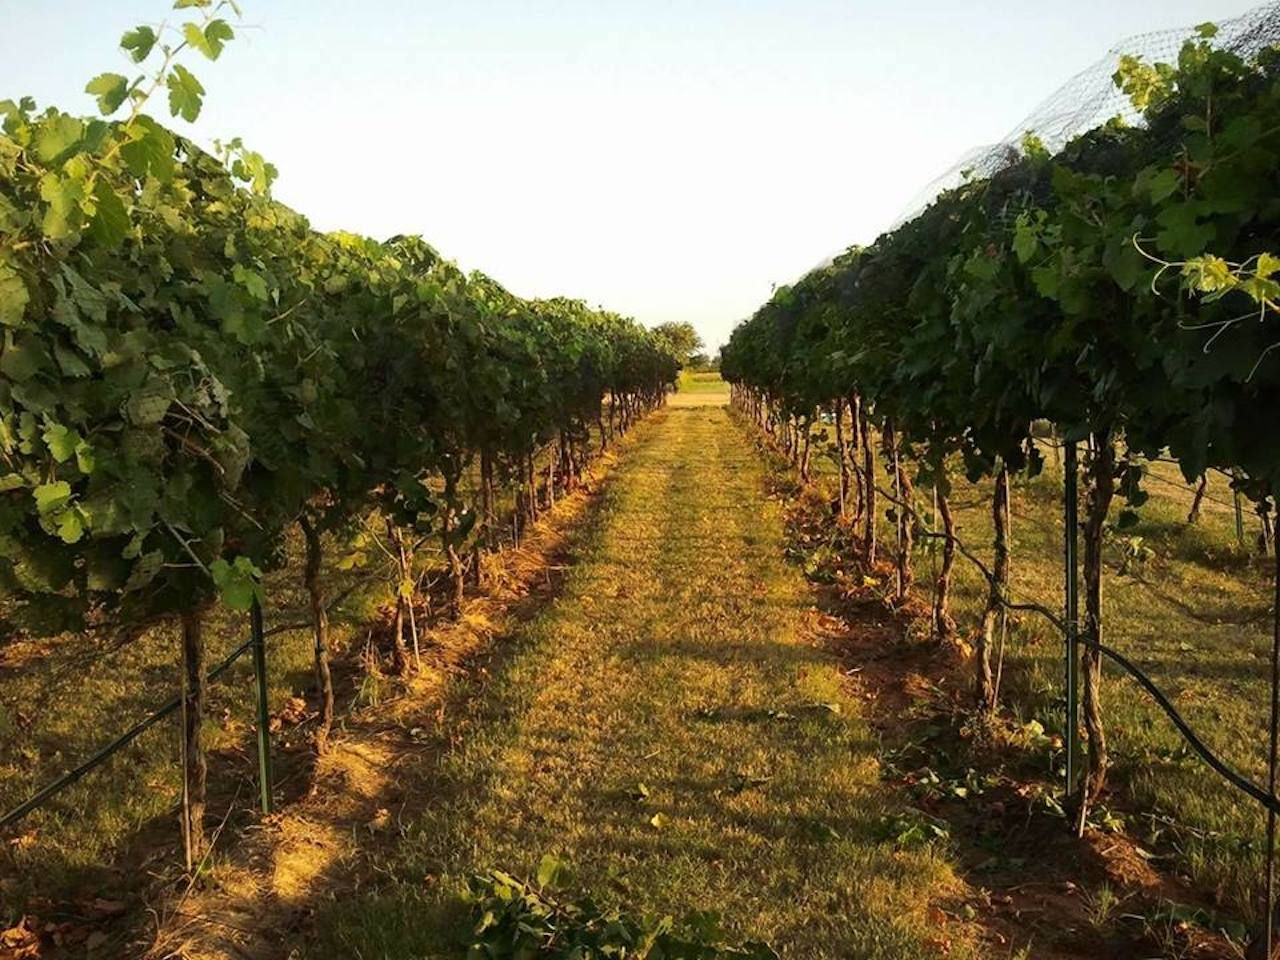 Rows of grapes at a vineyard in Oklahoma